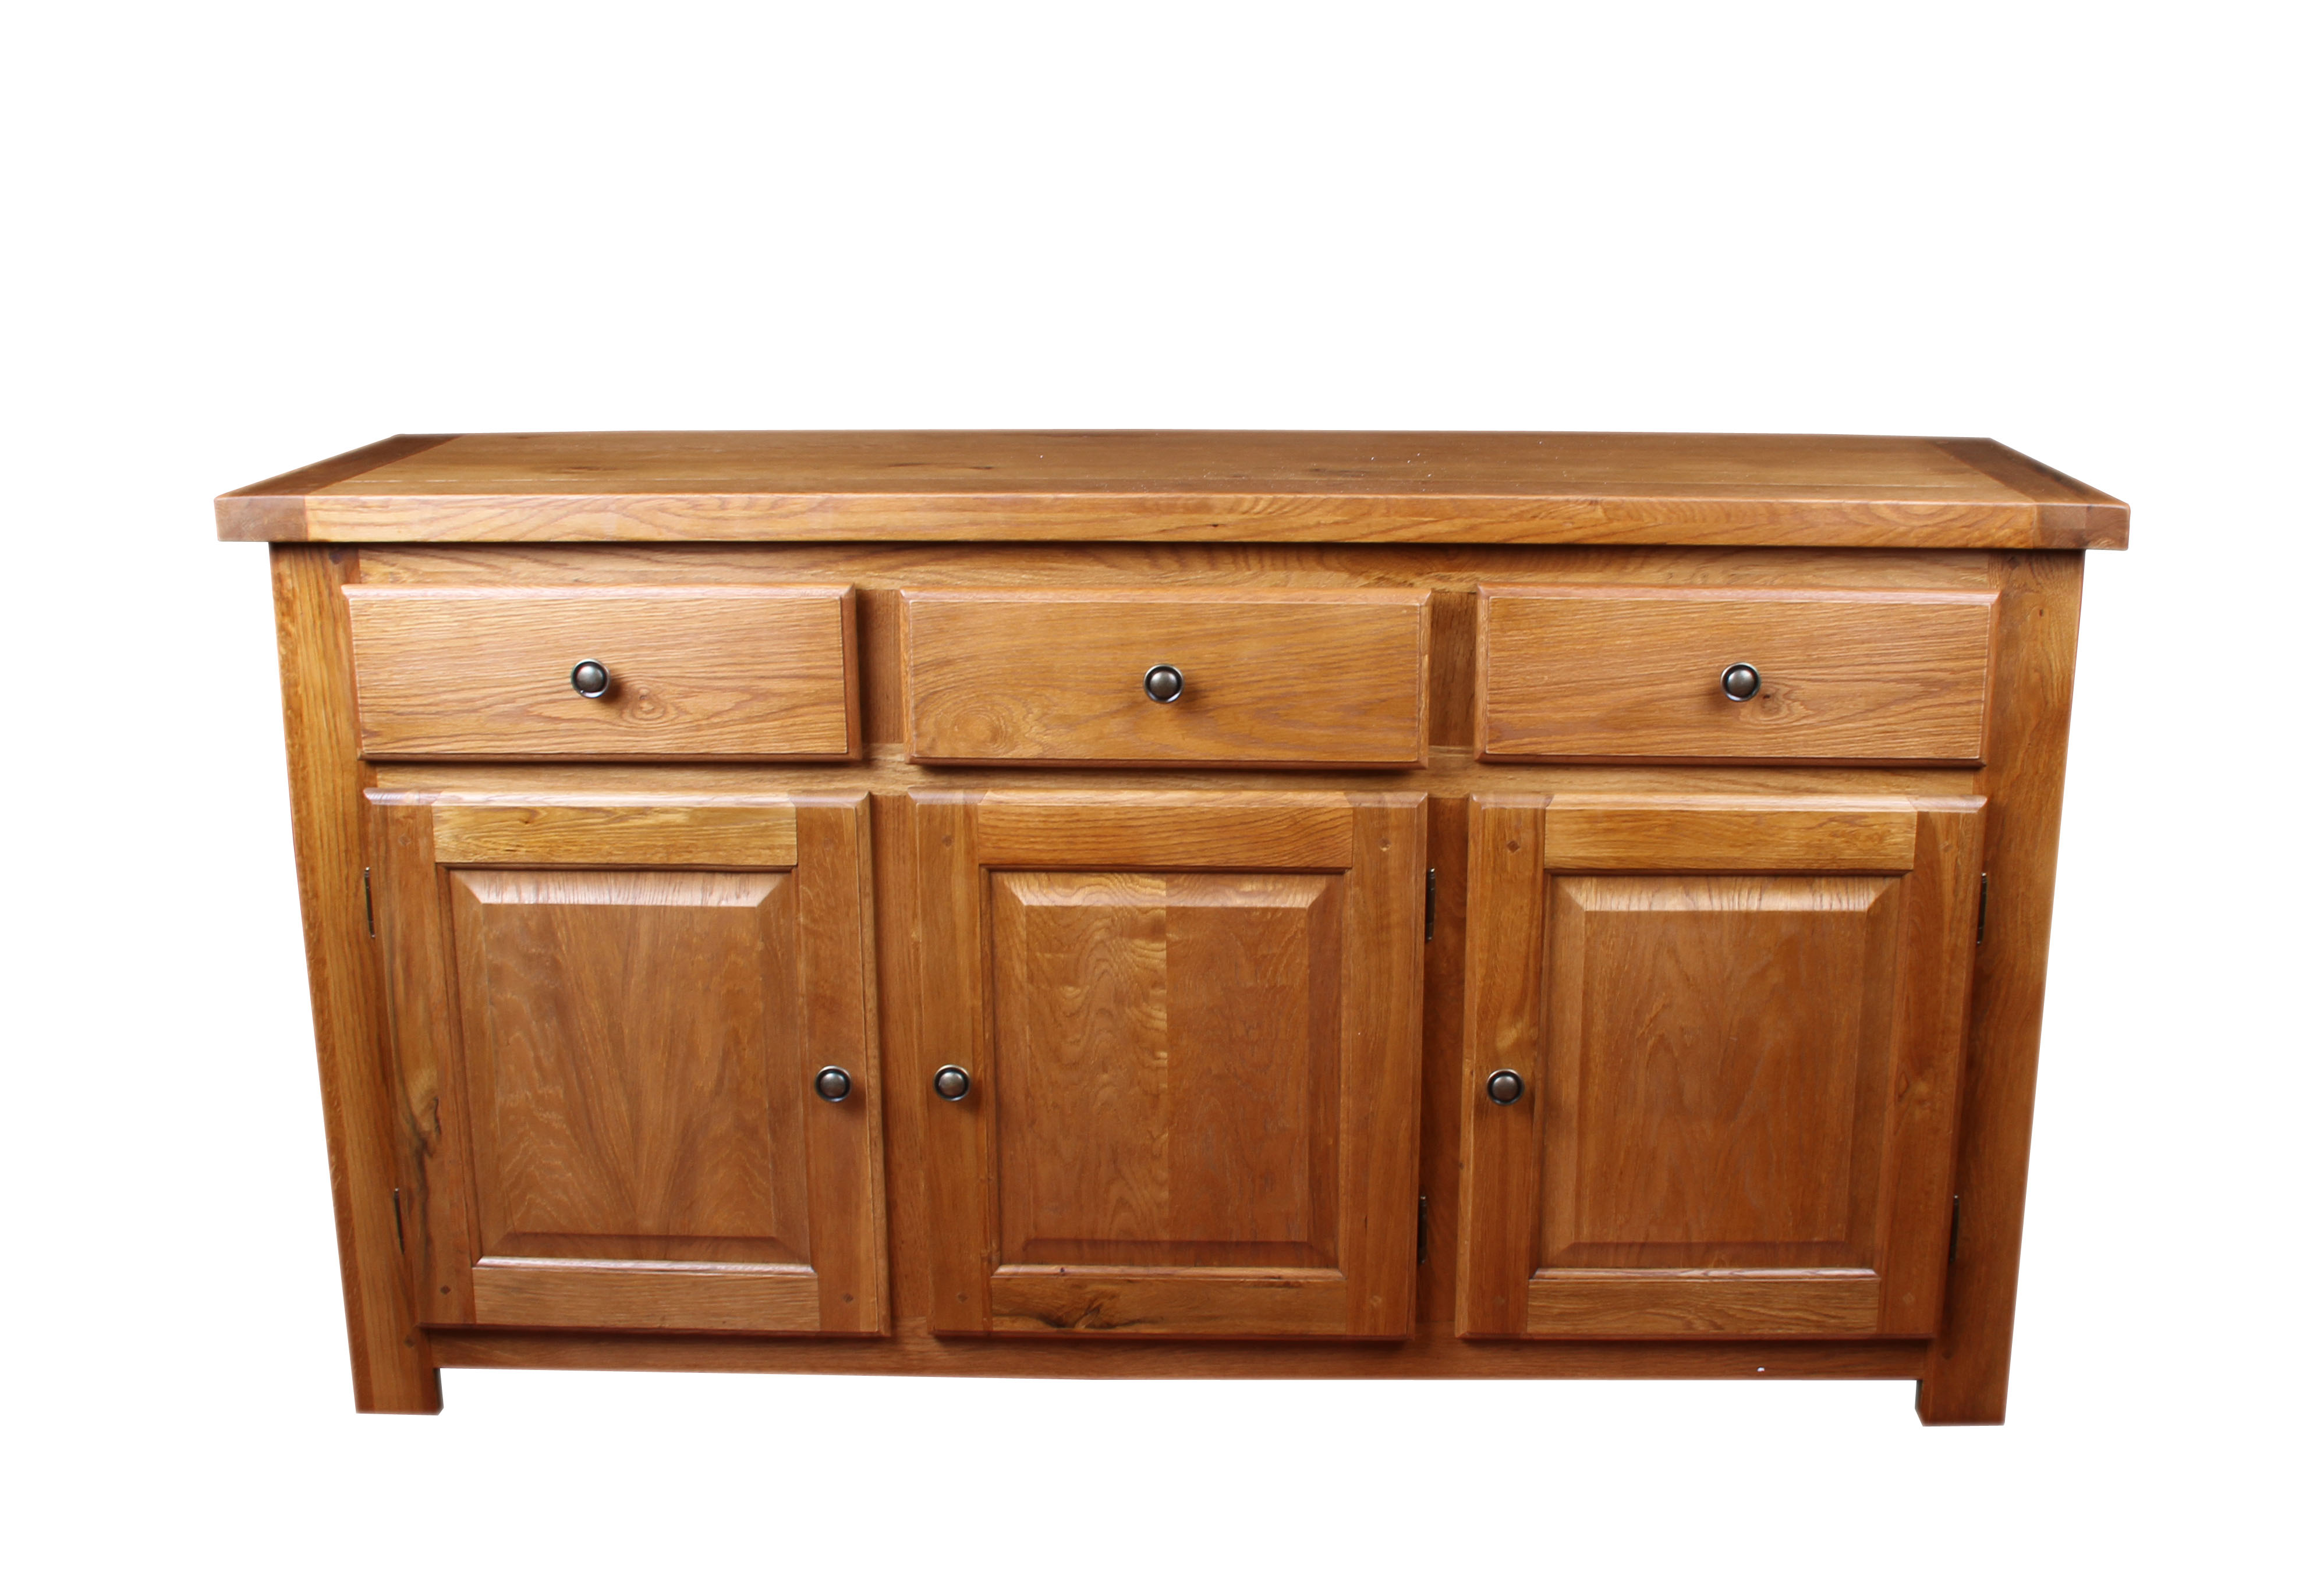 Windsor Rustic Oak Dining Room Furniture 3 Door Sideboard EBay